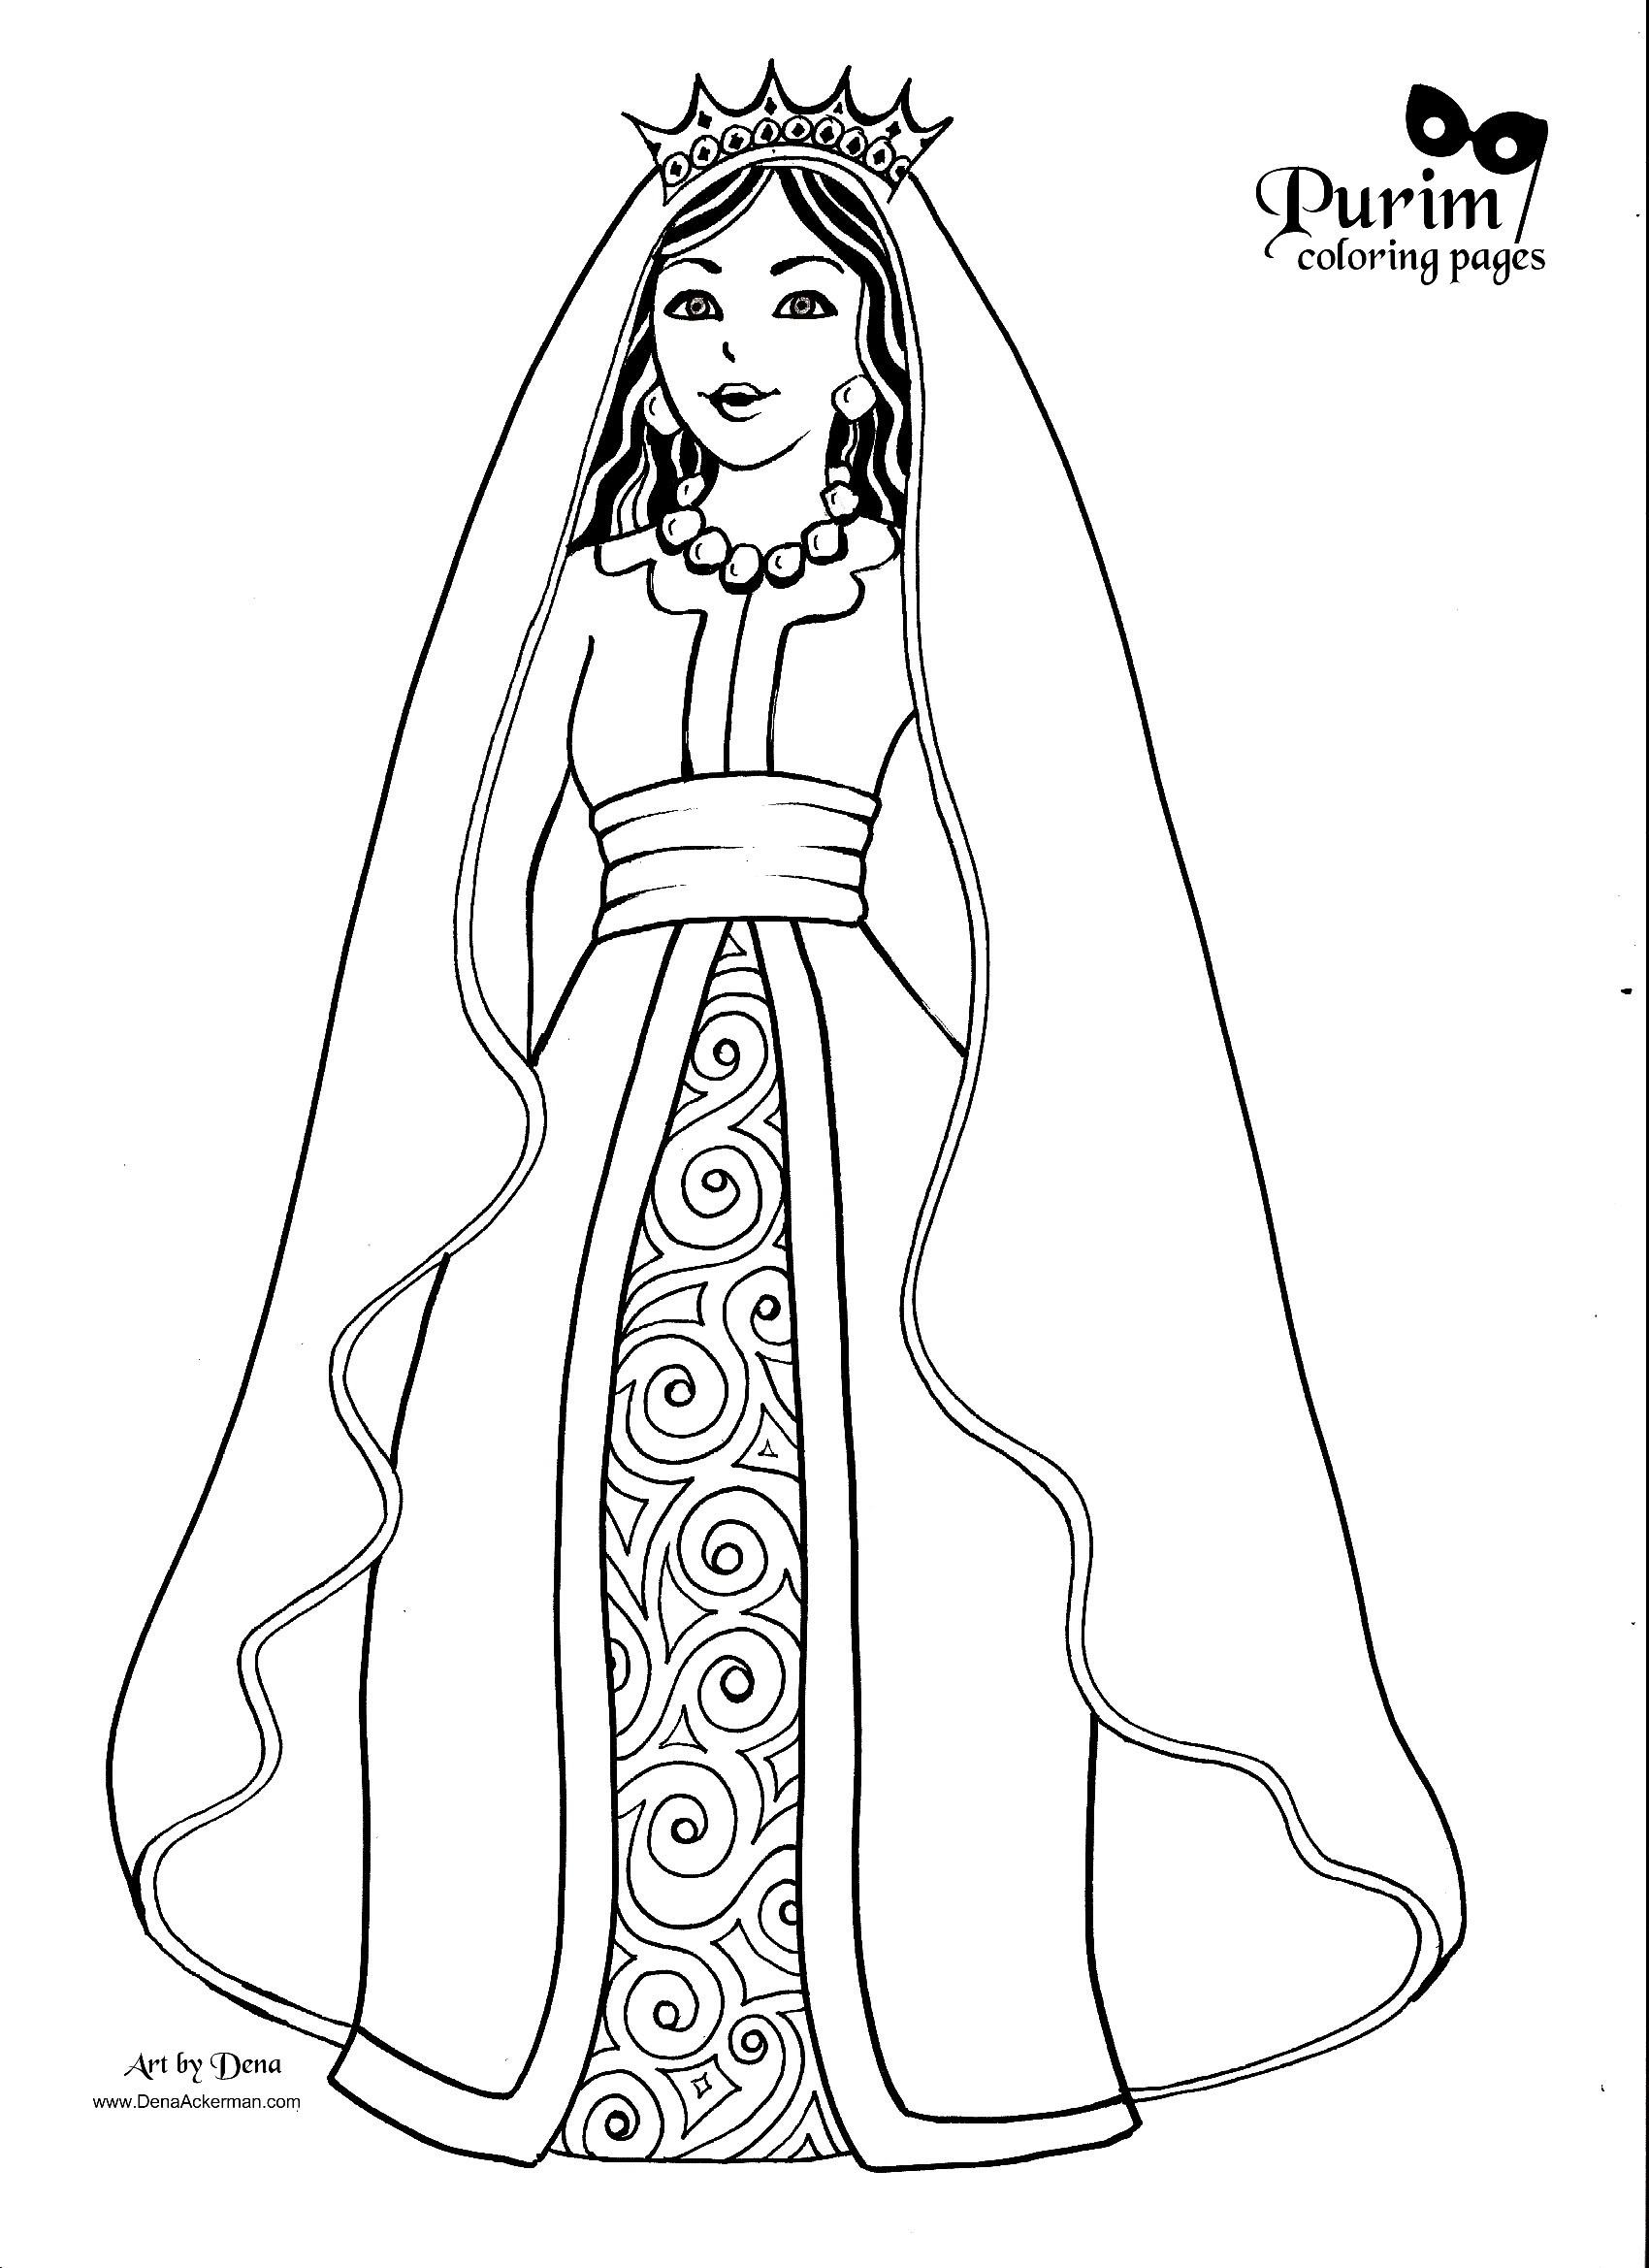 queen esther coloring page queen esther in the bible coloring pic bambinis page queen esther coloring